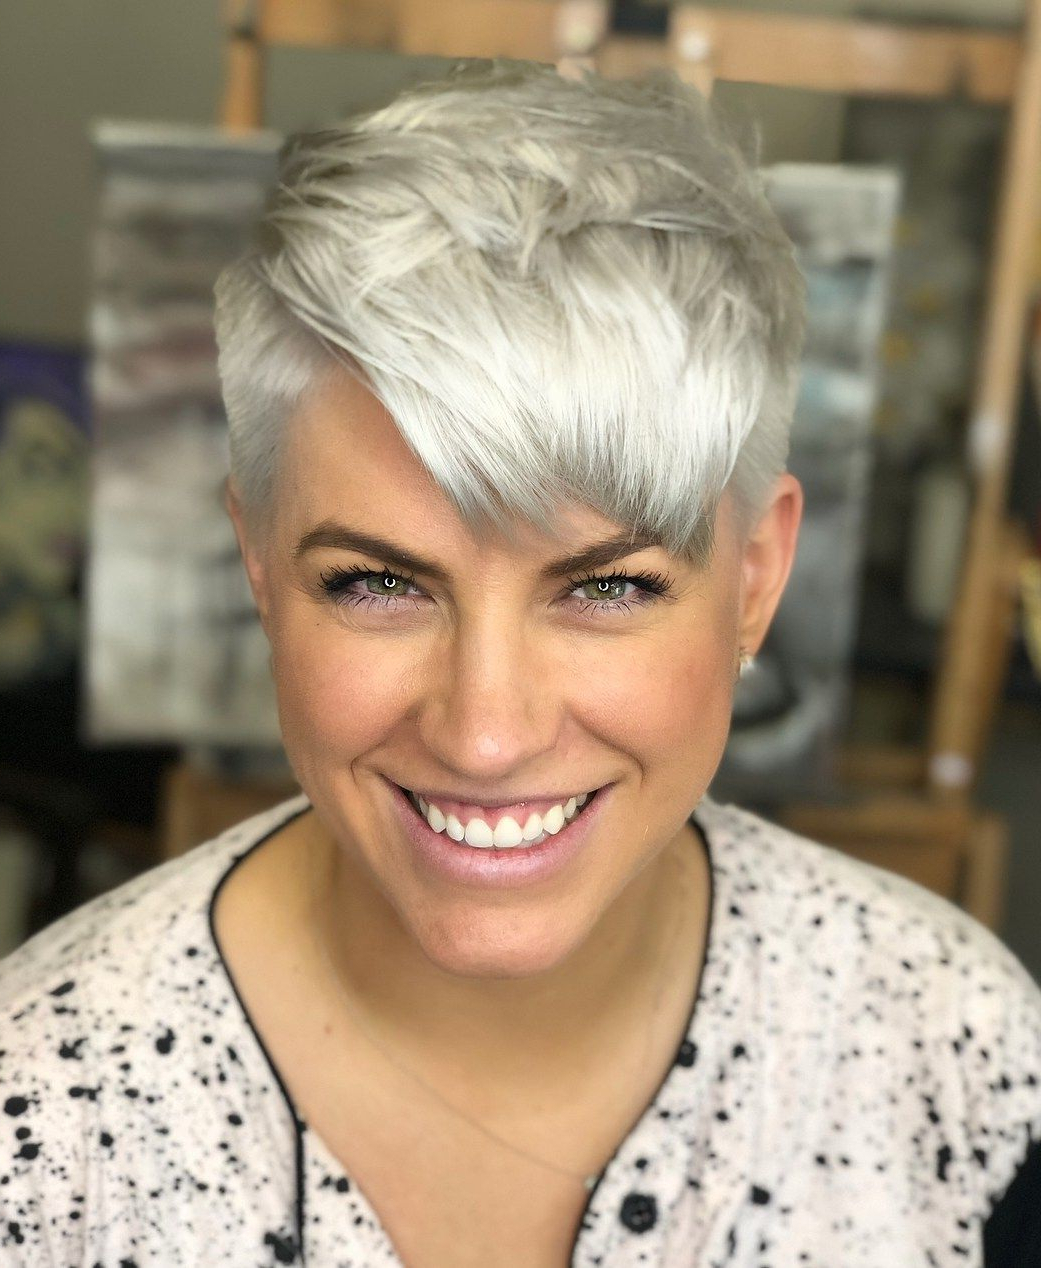 60 Cute Short Pixie Haircuts – Femininity And Practicality Inside Most Up To Date Metallic Short And Choppy Pixie Haircuts (Gallery 1 of 20)